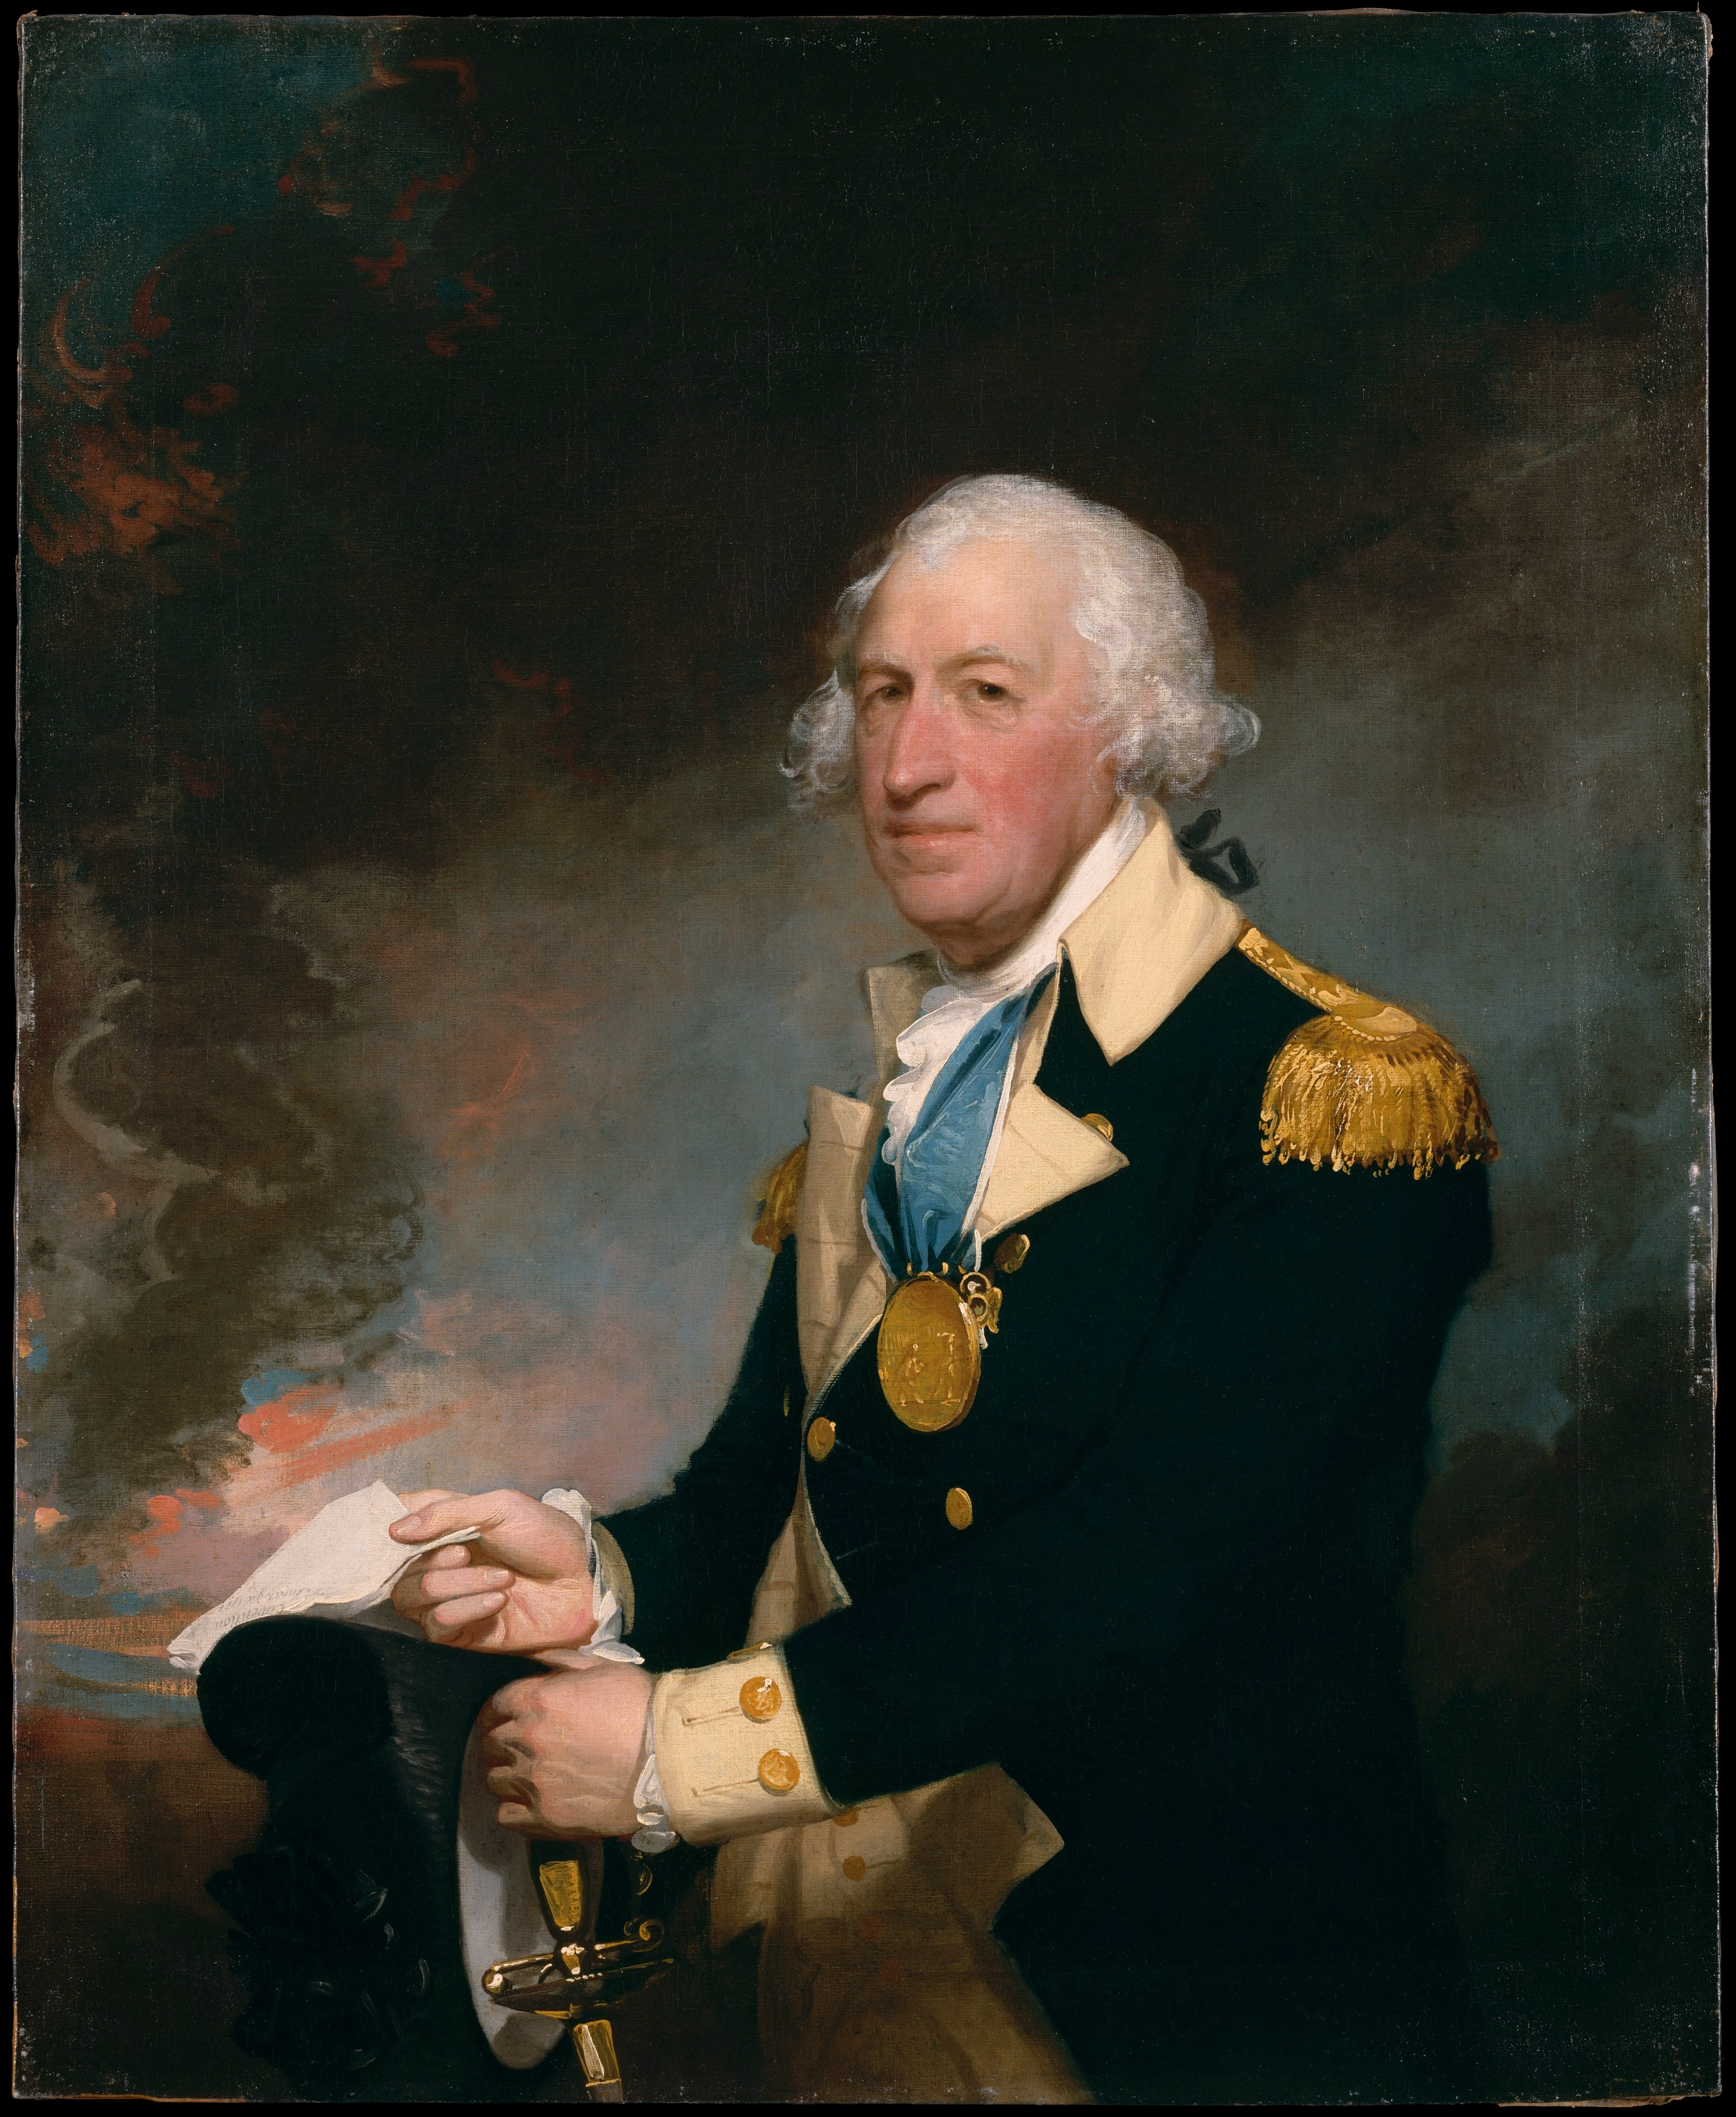 Oil painting of Continental Army General Horatio Gates by Gilbert Stuart, circa 1793-1793. Currently at the Metropolitan Museum of Art, New York City.